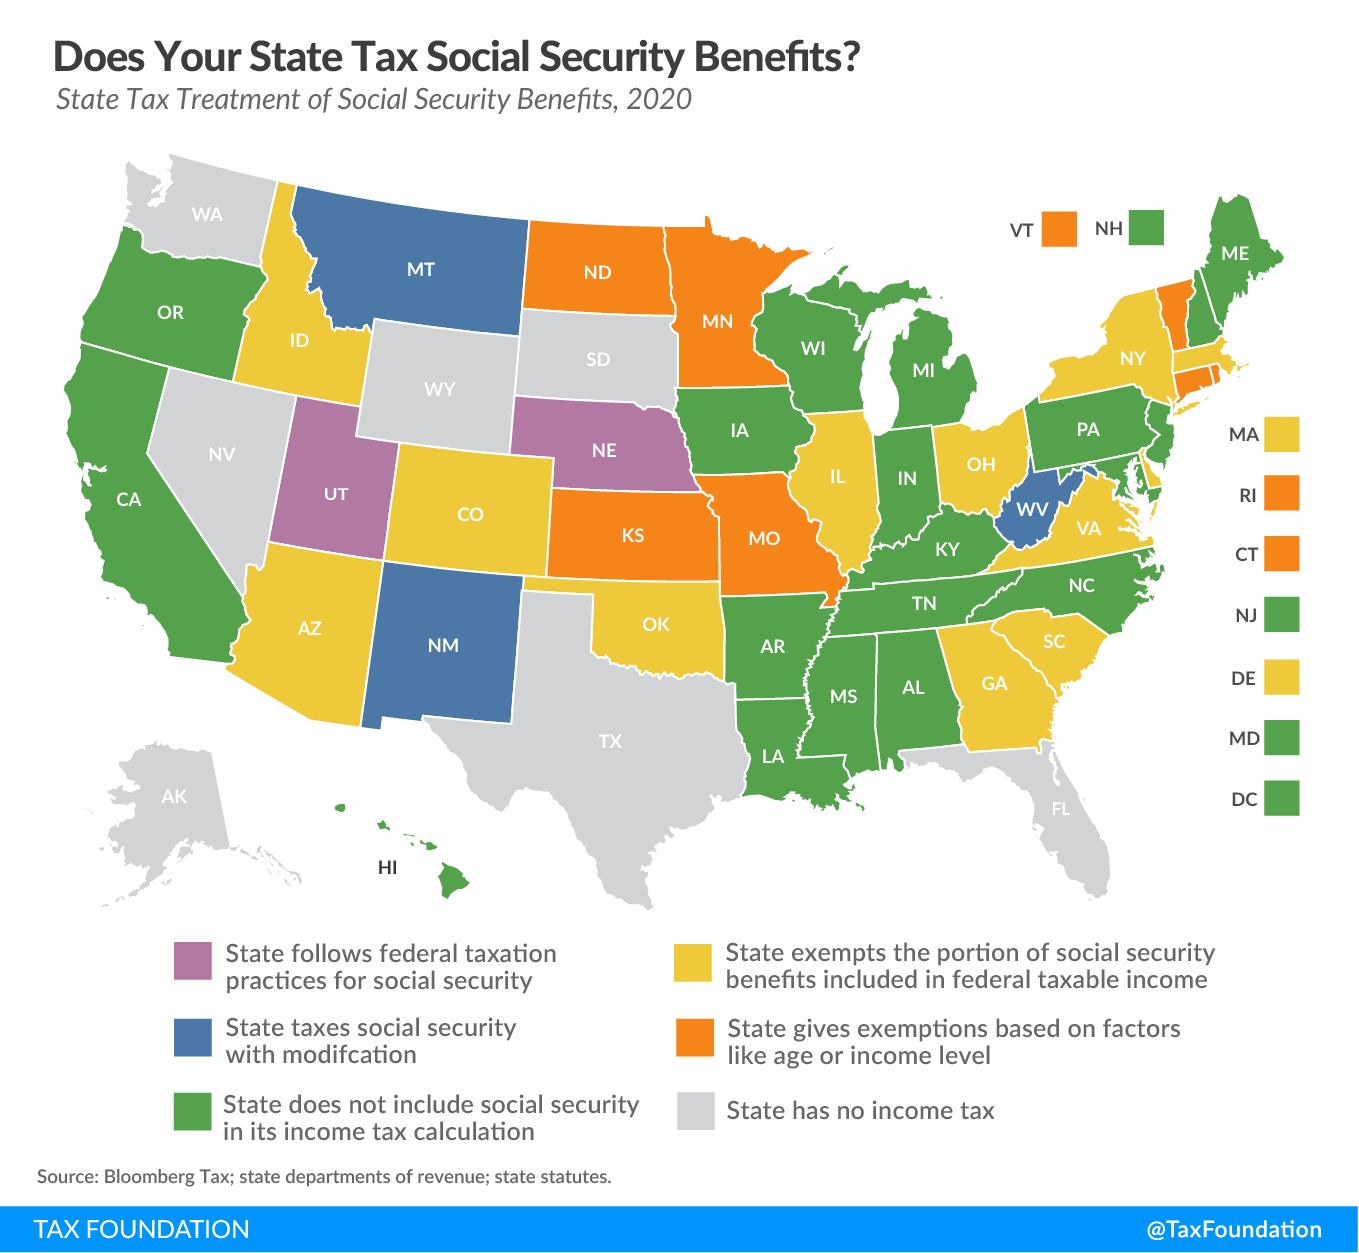 Does Your State Tax Social Security Benefits? States that tax social security benefits